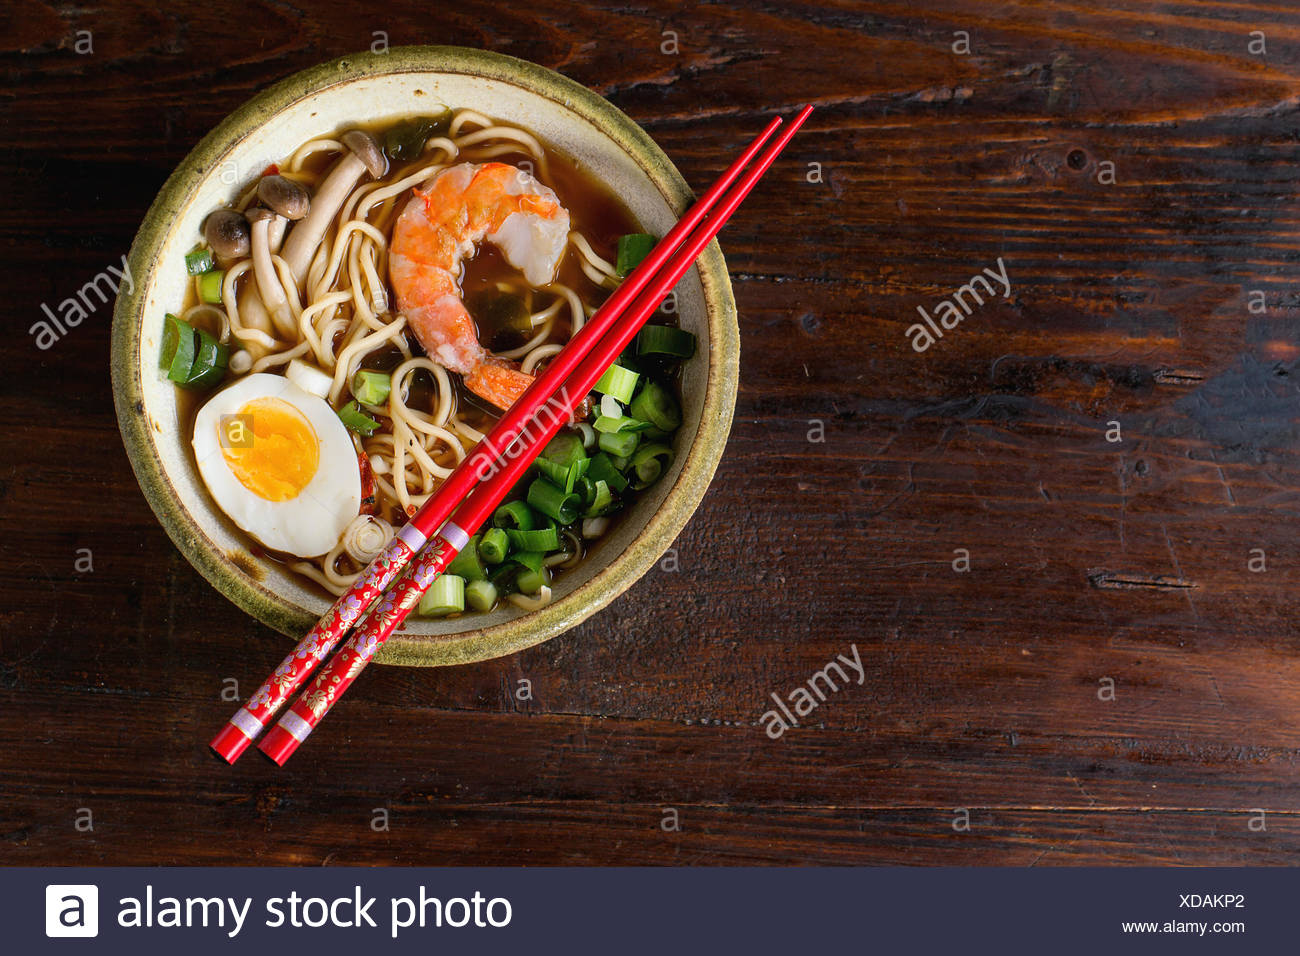 Ceramic bowl of asian ramen soup with shrimp, noodles, spring onion, sliced egg and mushrooms, served with red chopsticks over d - Stock Image